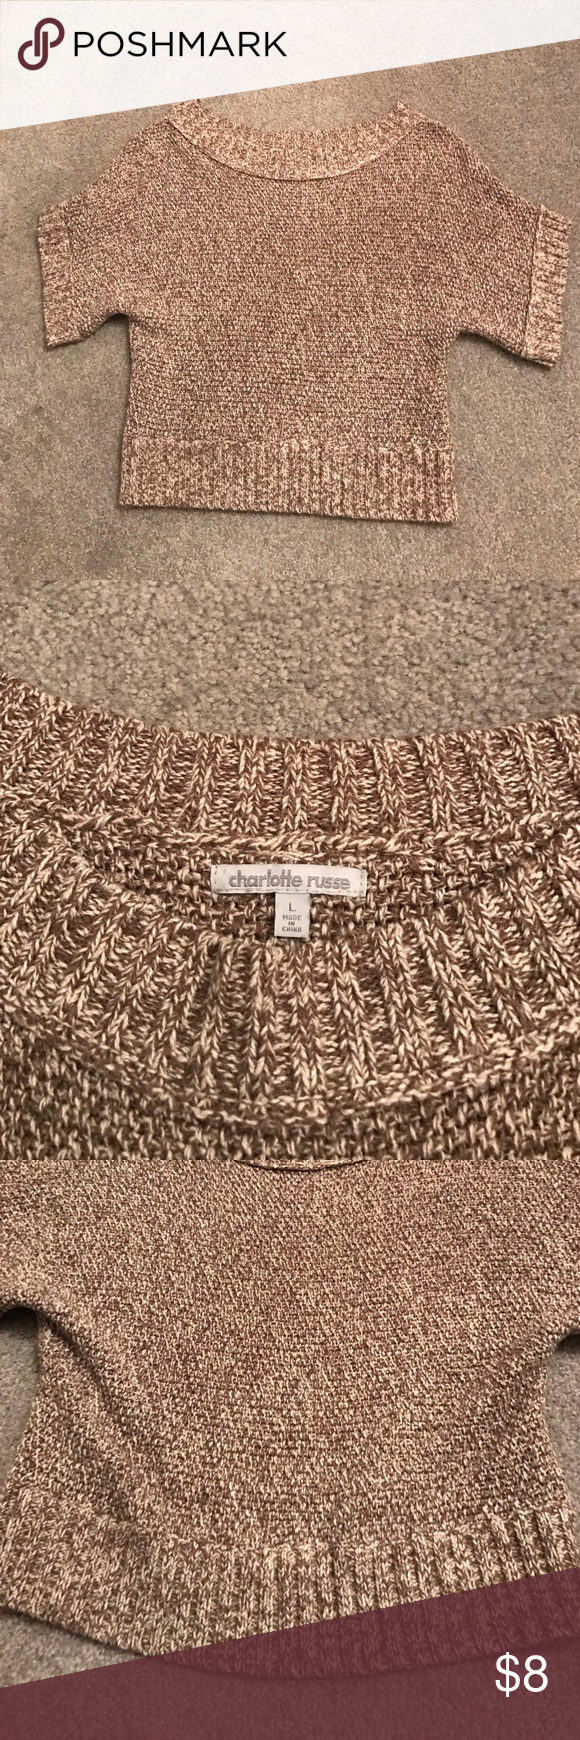 Cropped sweater, Charlotte Russe Great cropped sweater! So cute on! Runs small Charlotte Russe Sweaters Crew & Scoop Necks